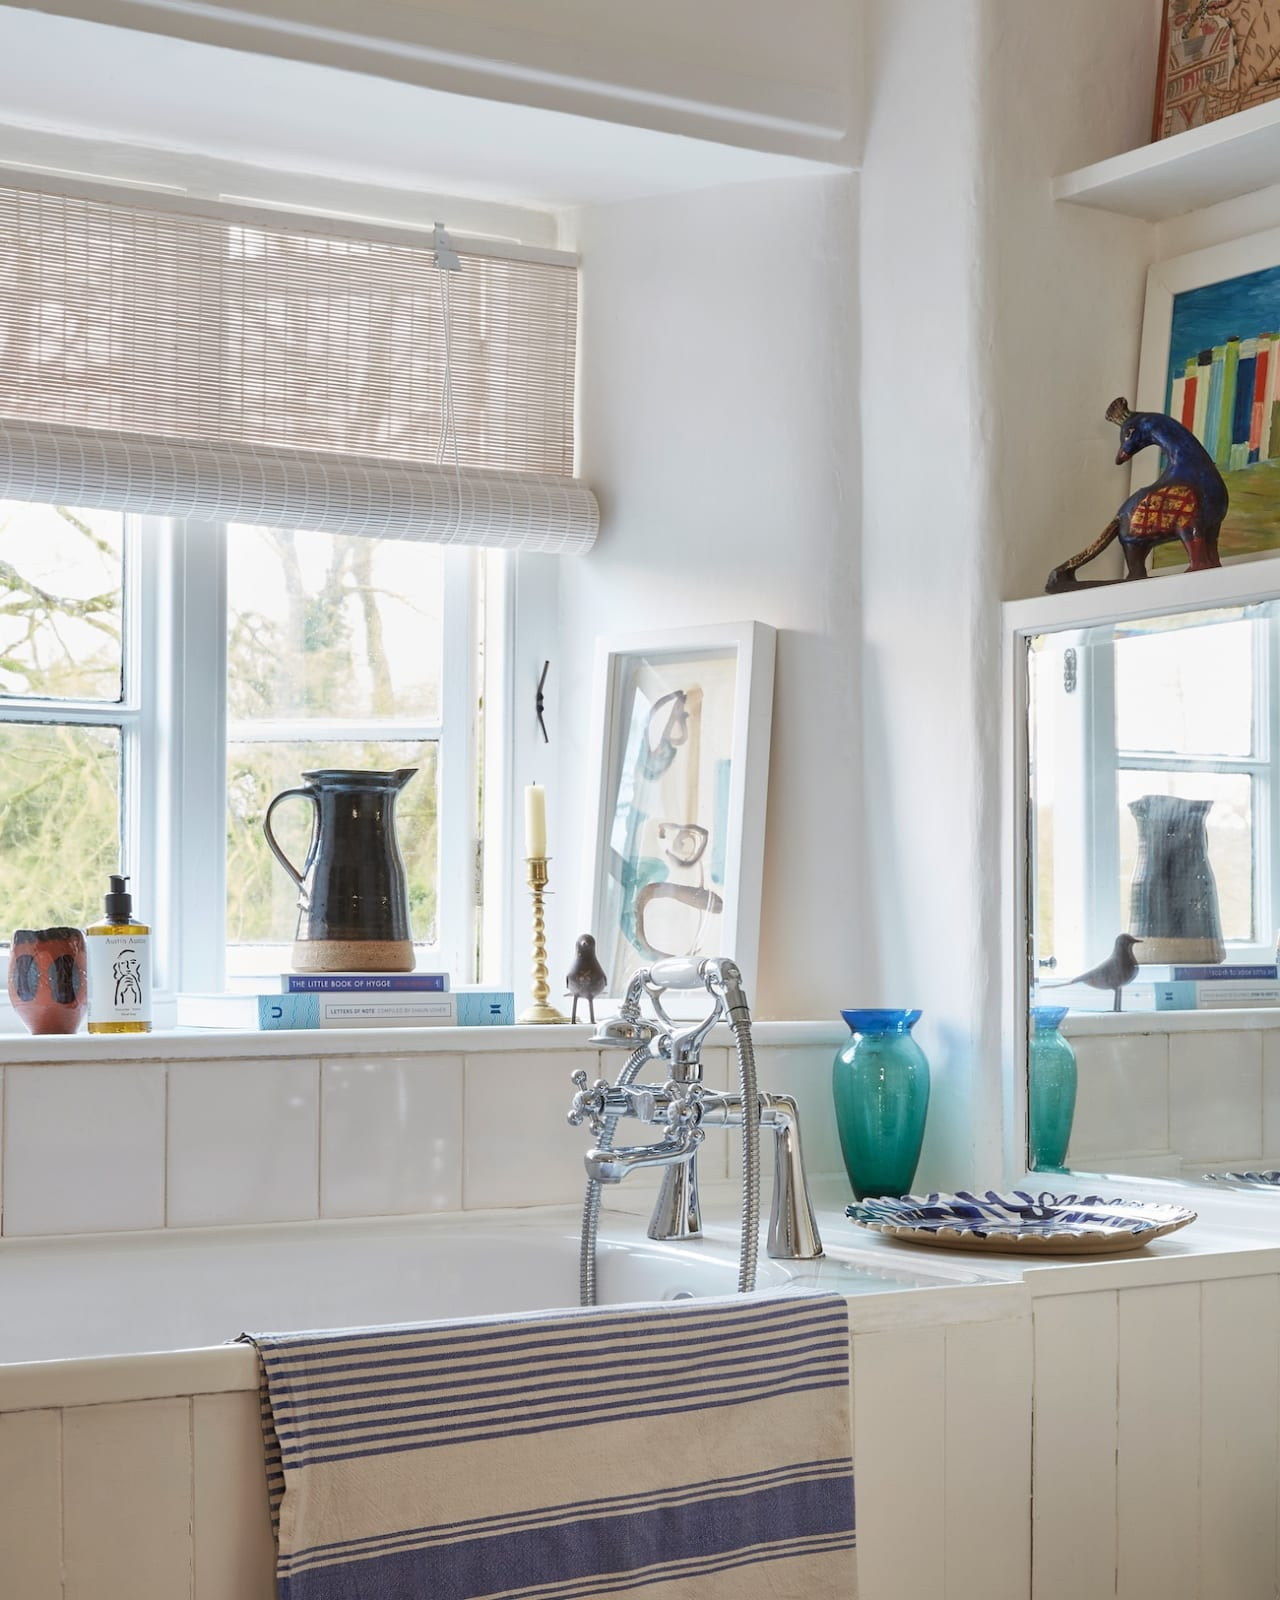 The peaceful bathroom in the cottage that looks out into the garden below.